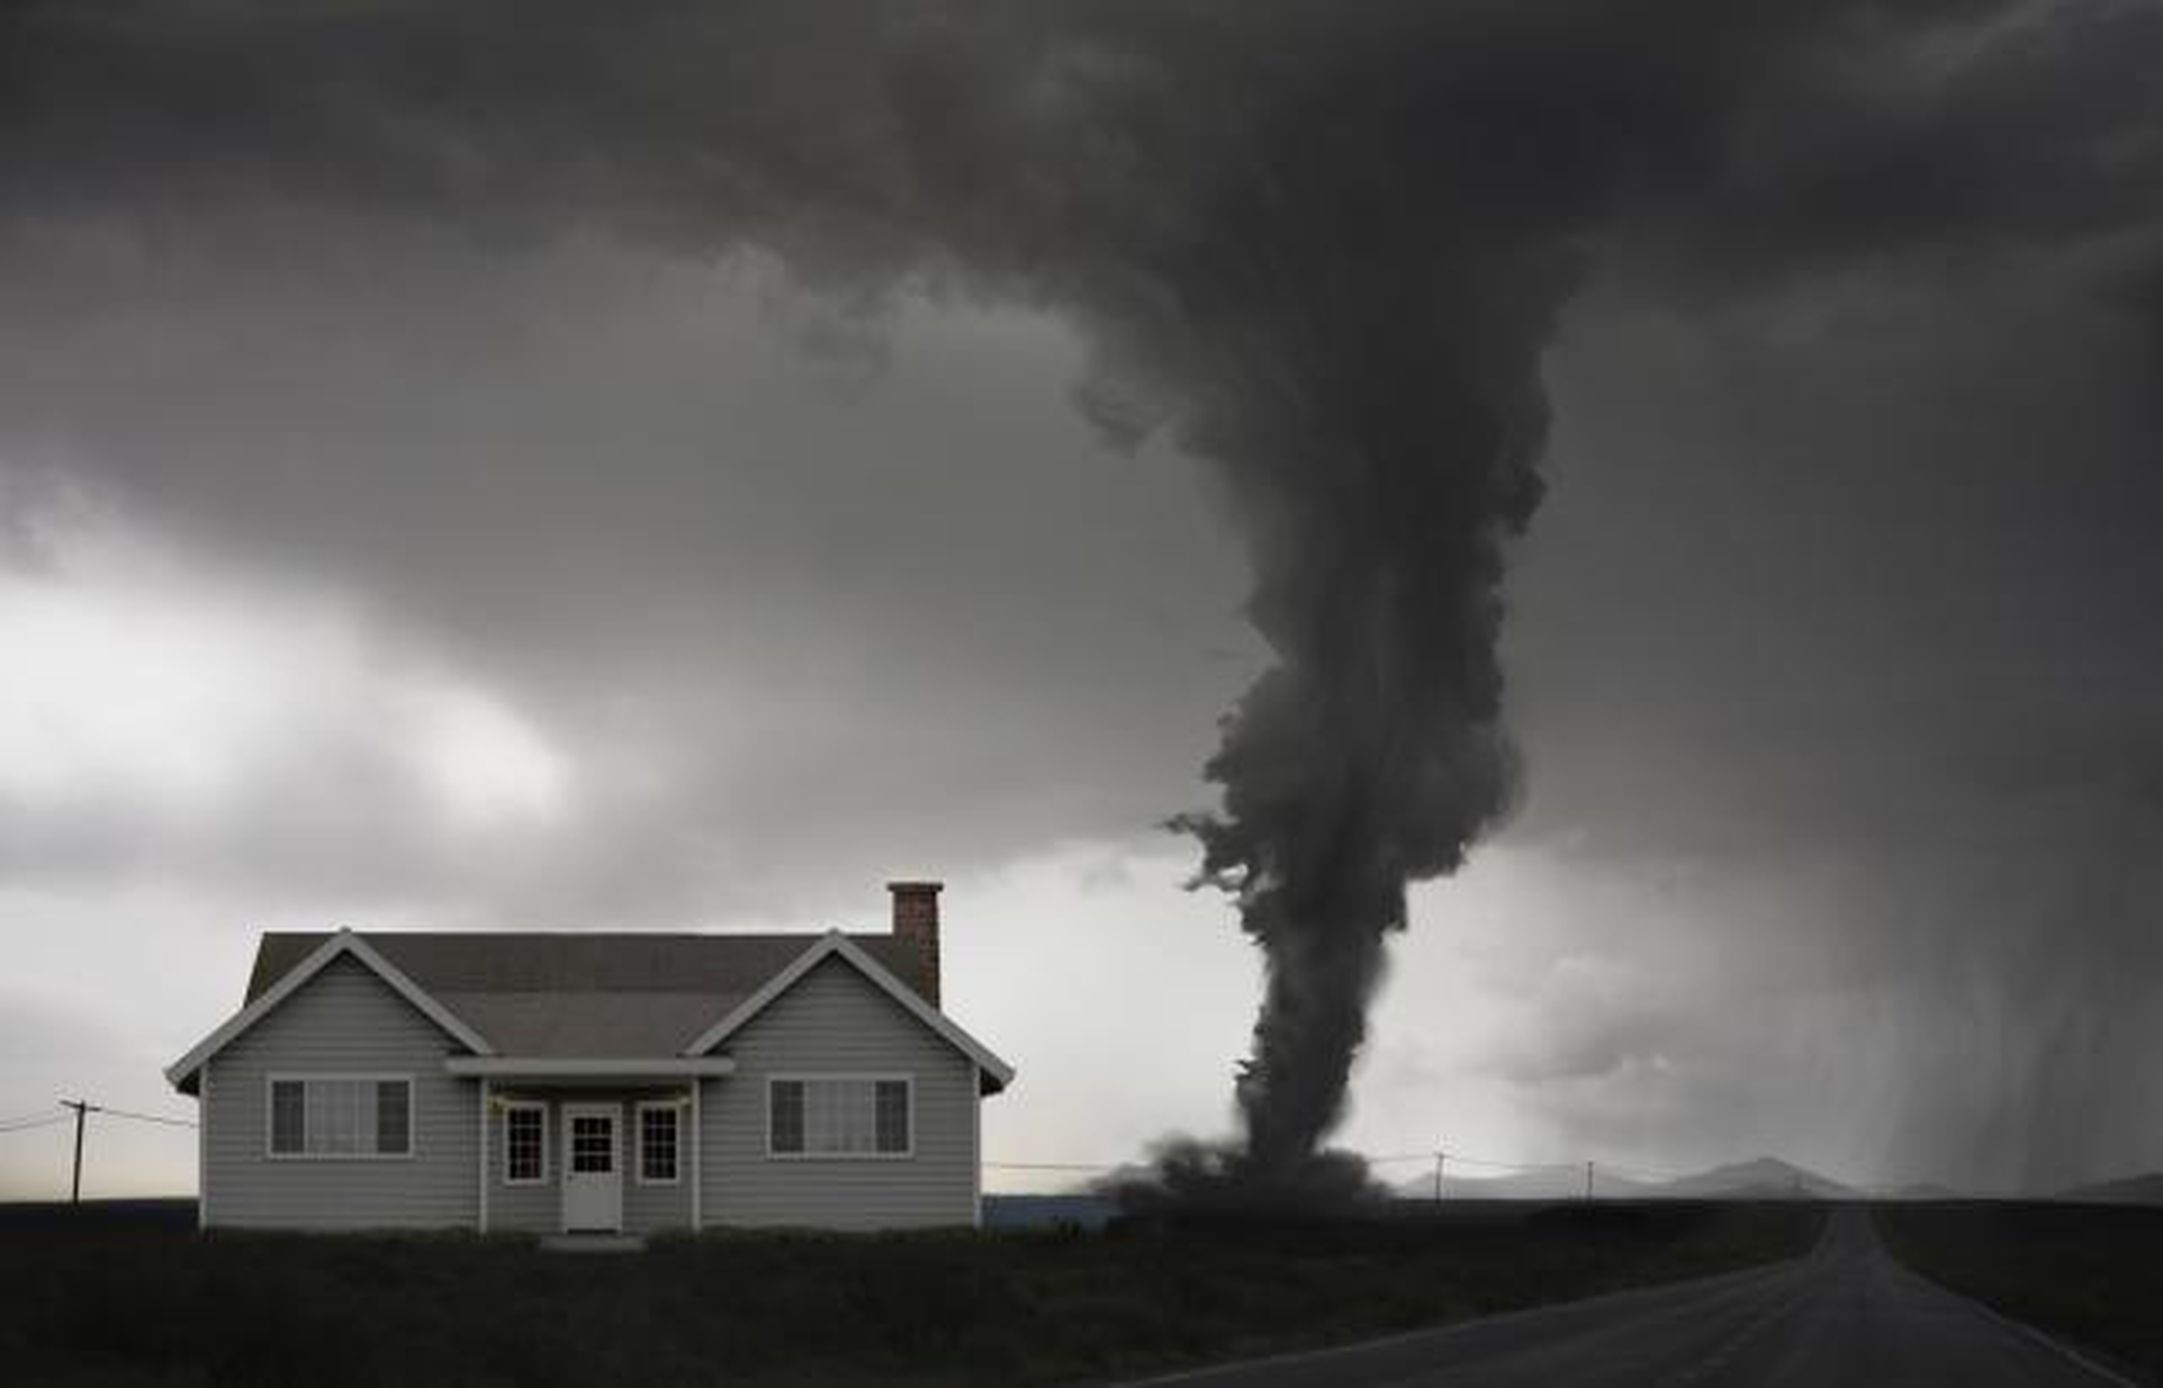 7 Things You Should Never Believe About Tornadoes